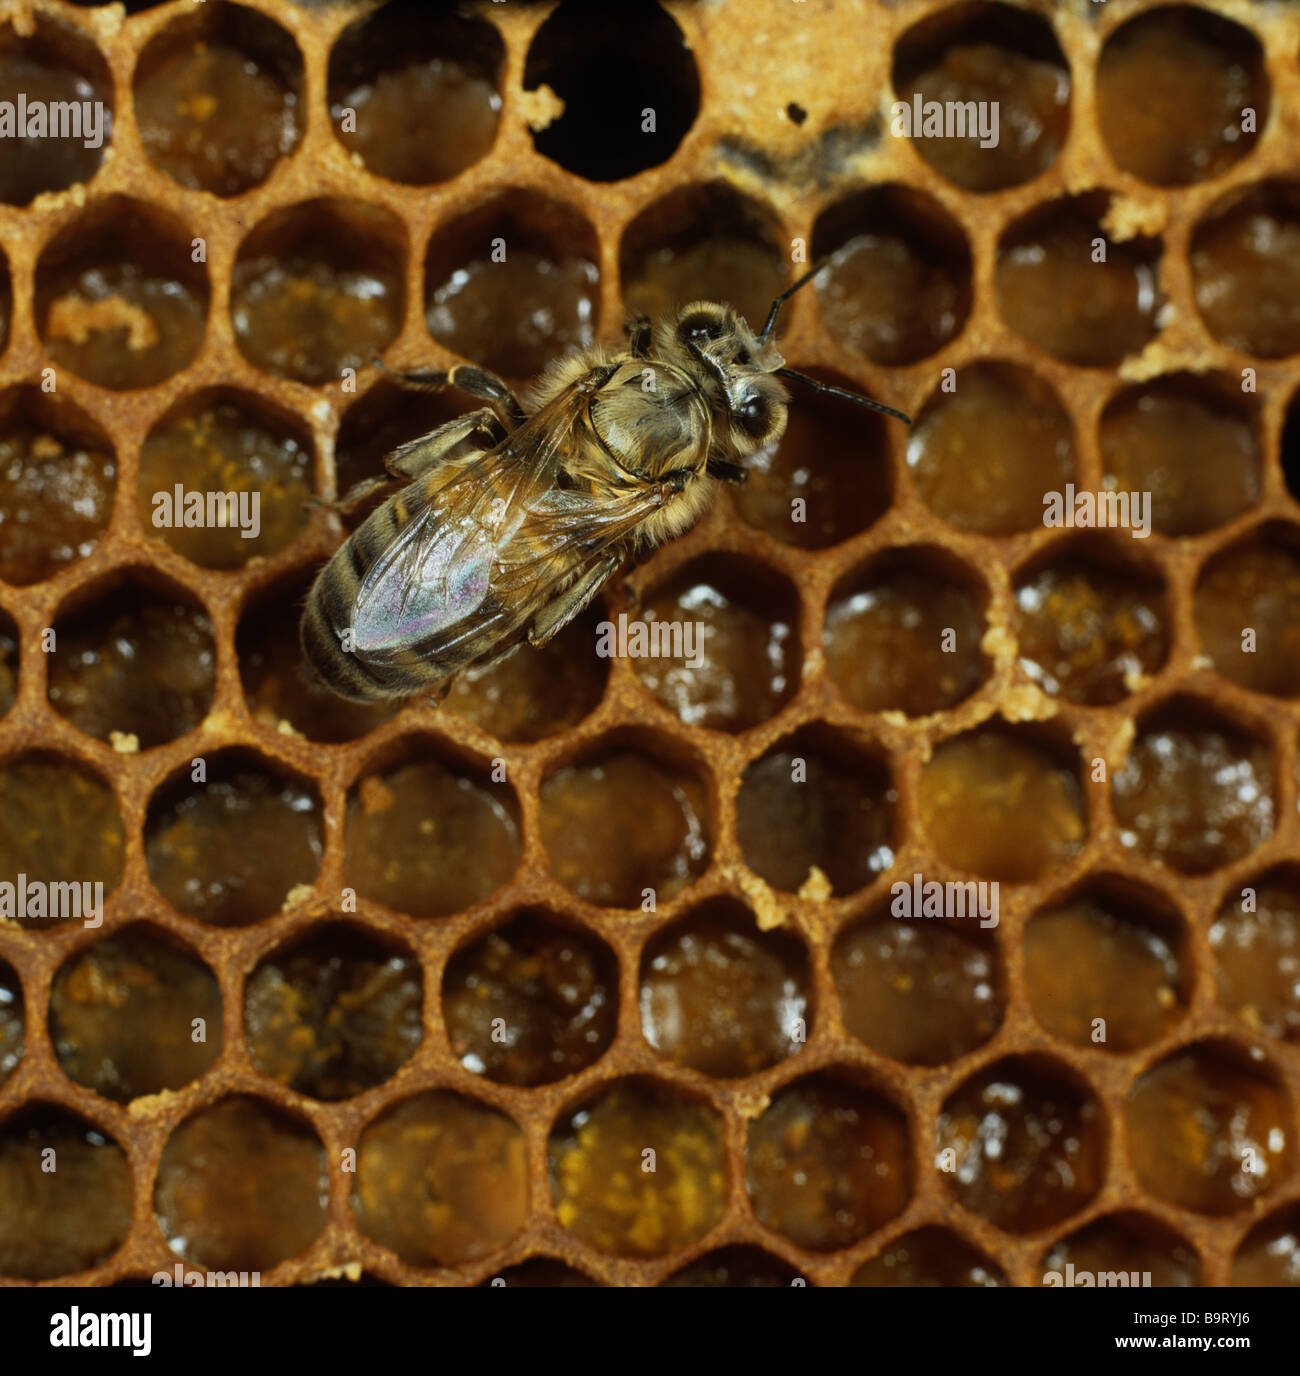 Worker honey bee Apis mellifera newly emerged from brood cells in the hive - Stock Image